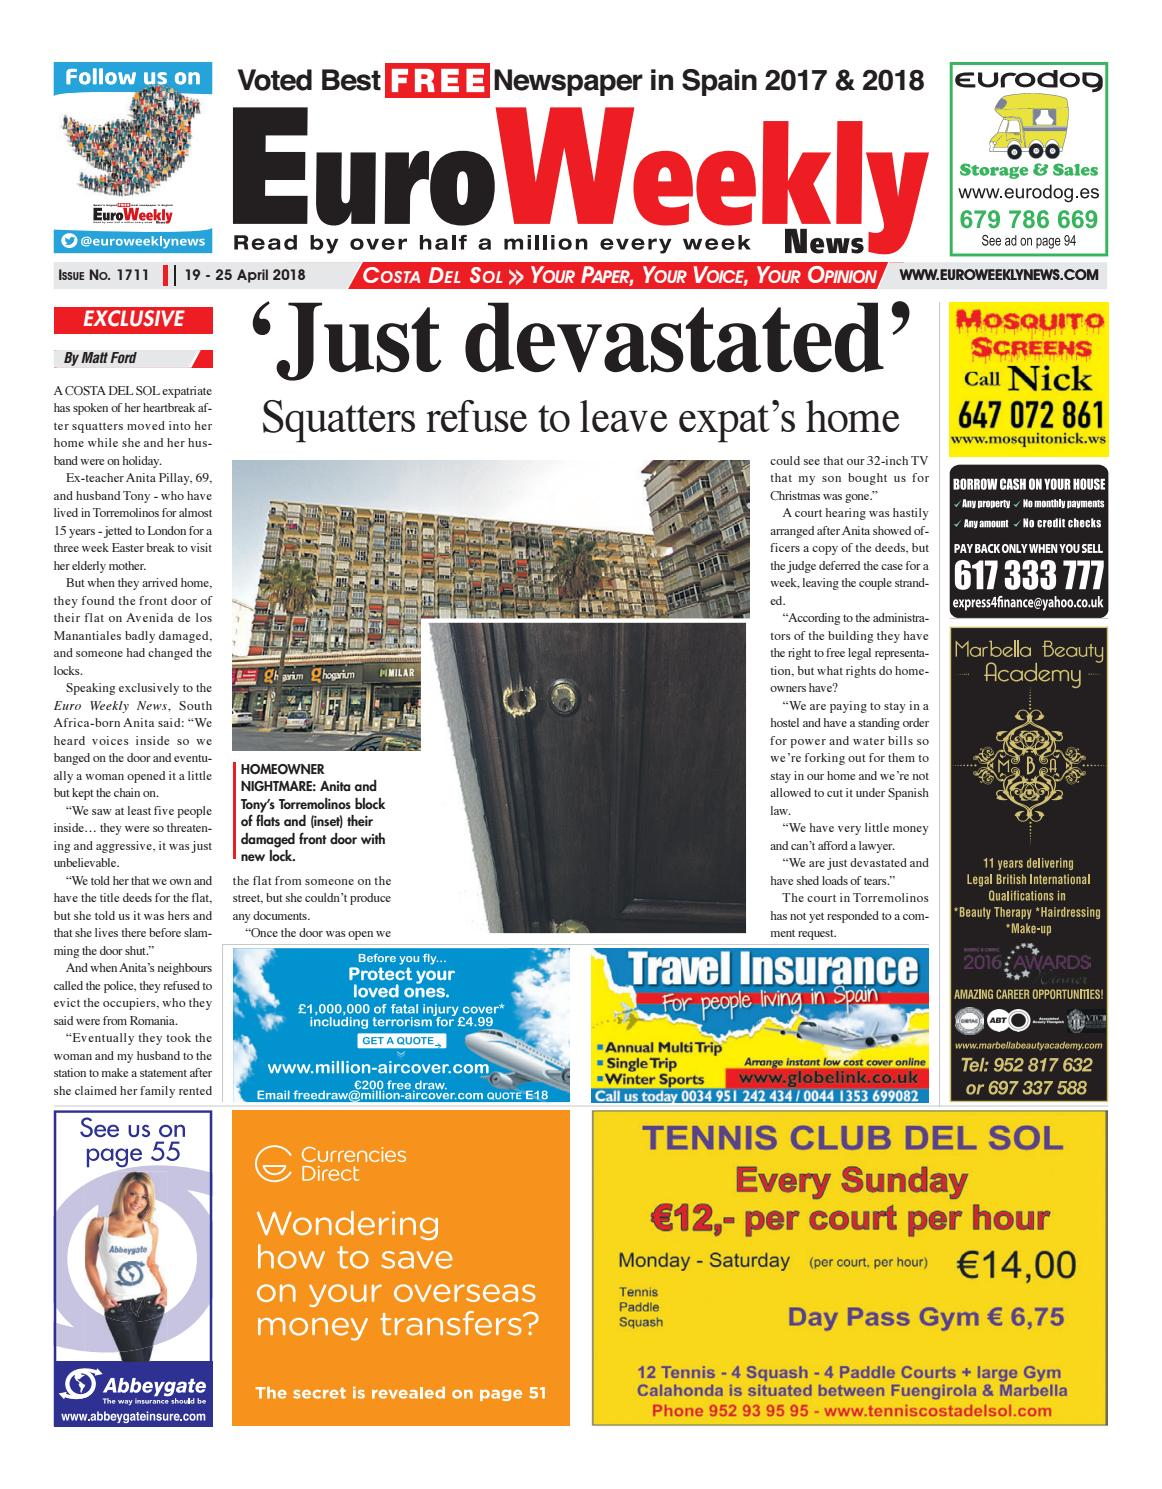 euro weekly news costa del sol 19 \u2013 25 april 2018 issue 1711 by  euro weekly news costa del sol 19 \u2013 25 april 2018 issue 1711 by euro weekly news media s a issuu